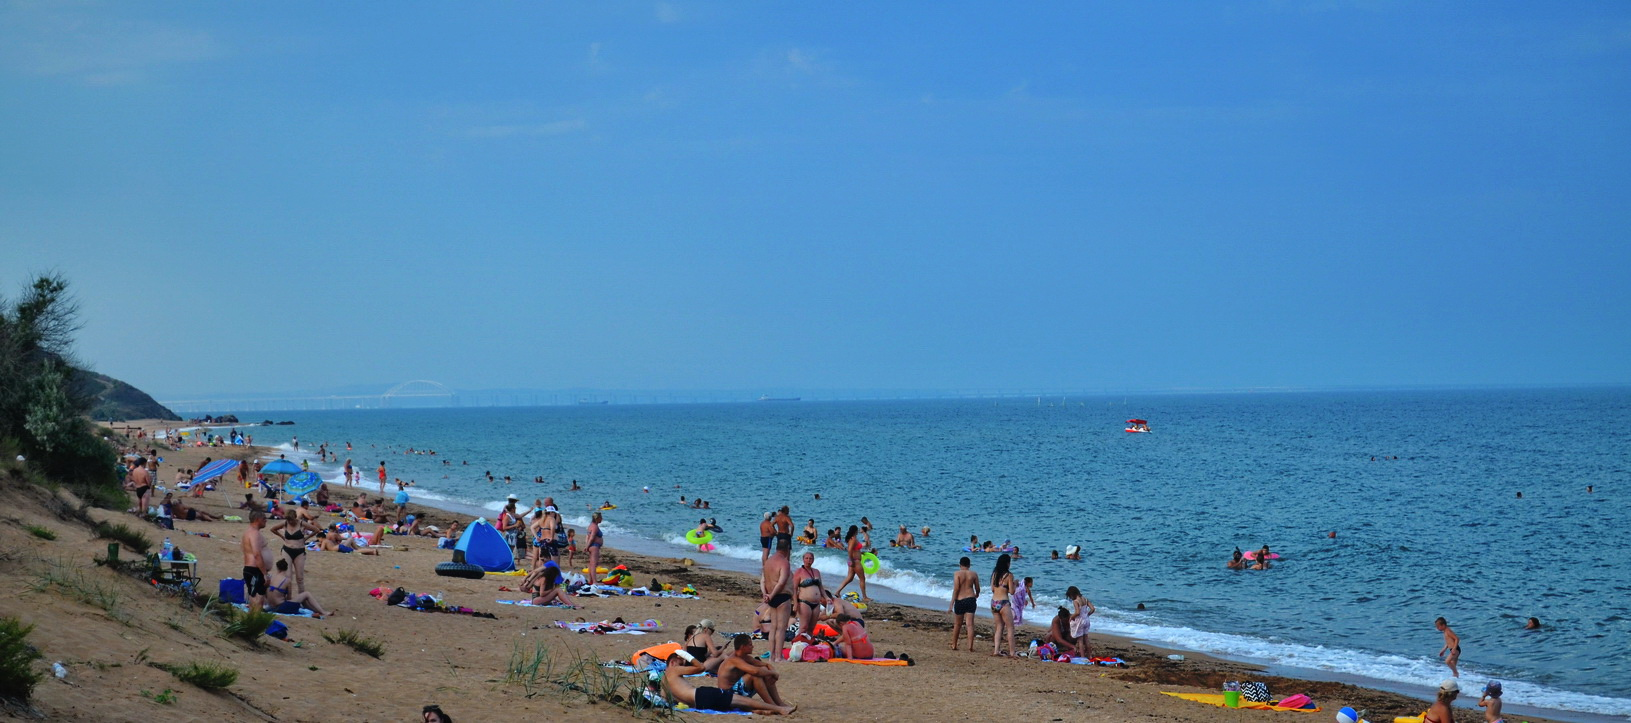 kerch beach geroevka 08 07 2020